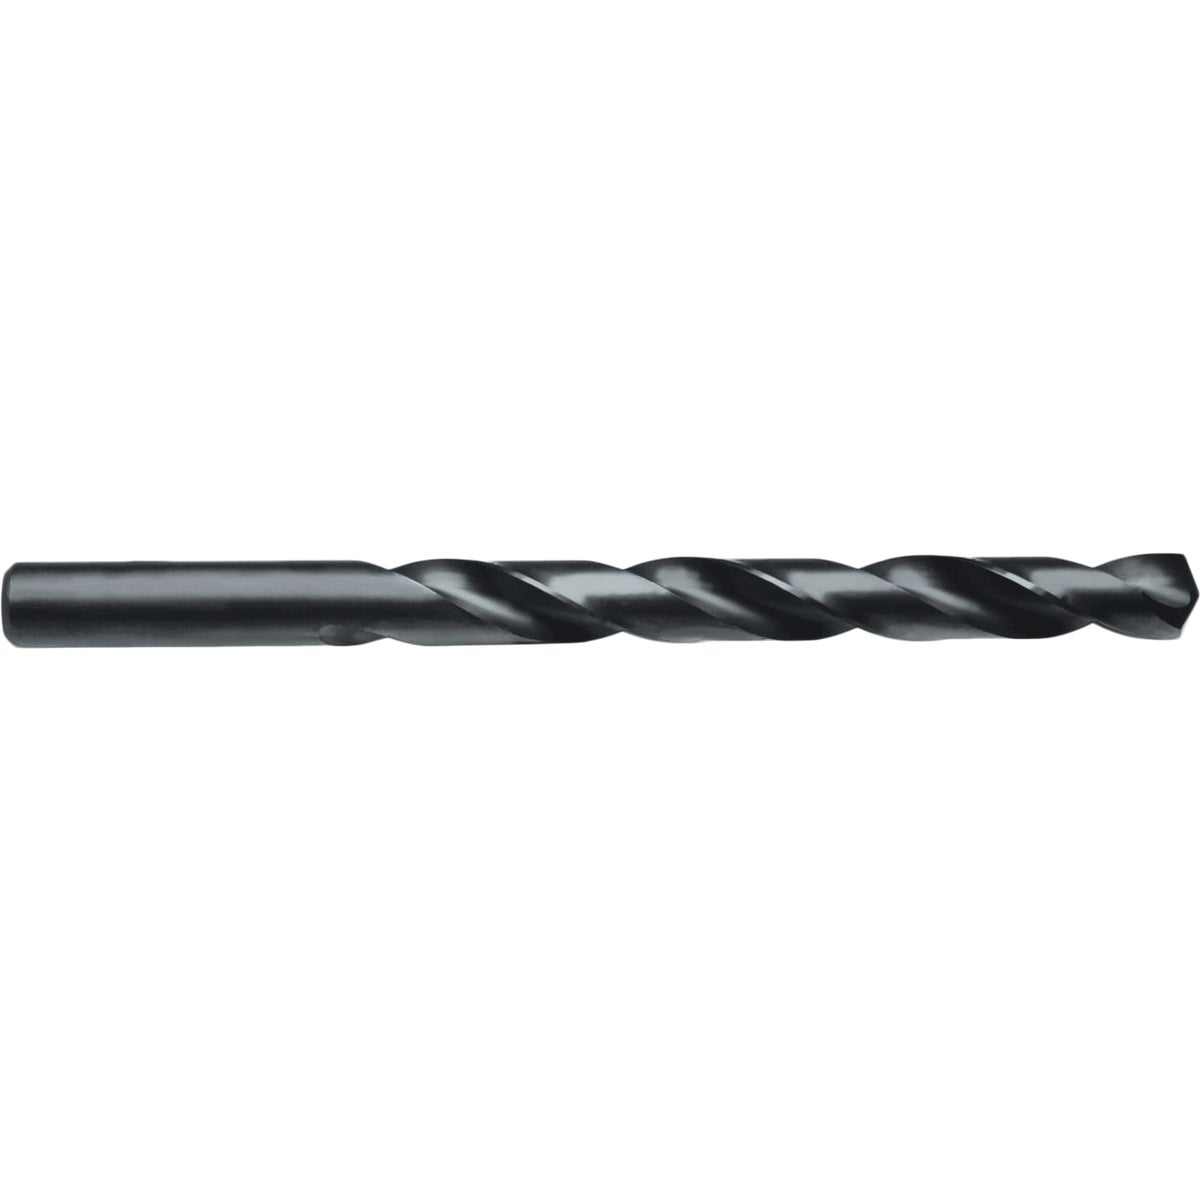 "15/64"" BLACK OXIDE BIT - DW1115 by DeWalt"